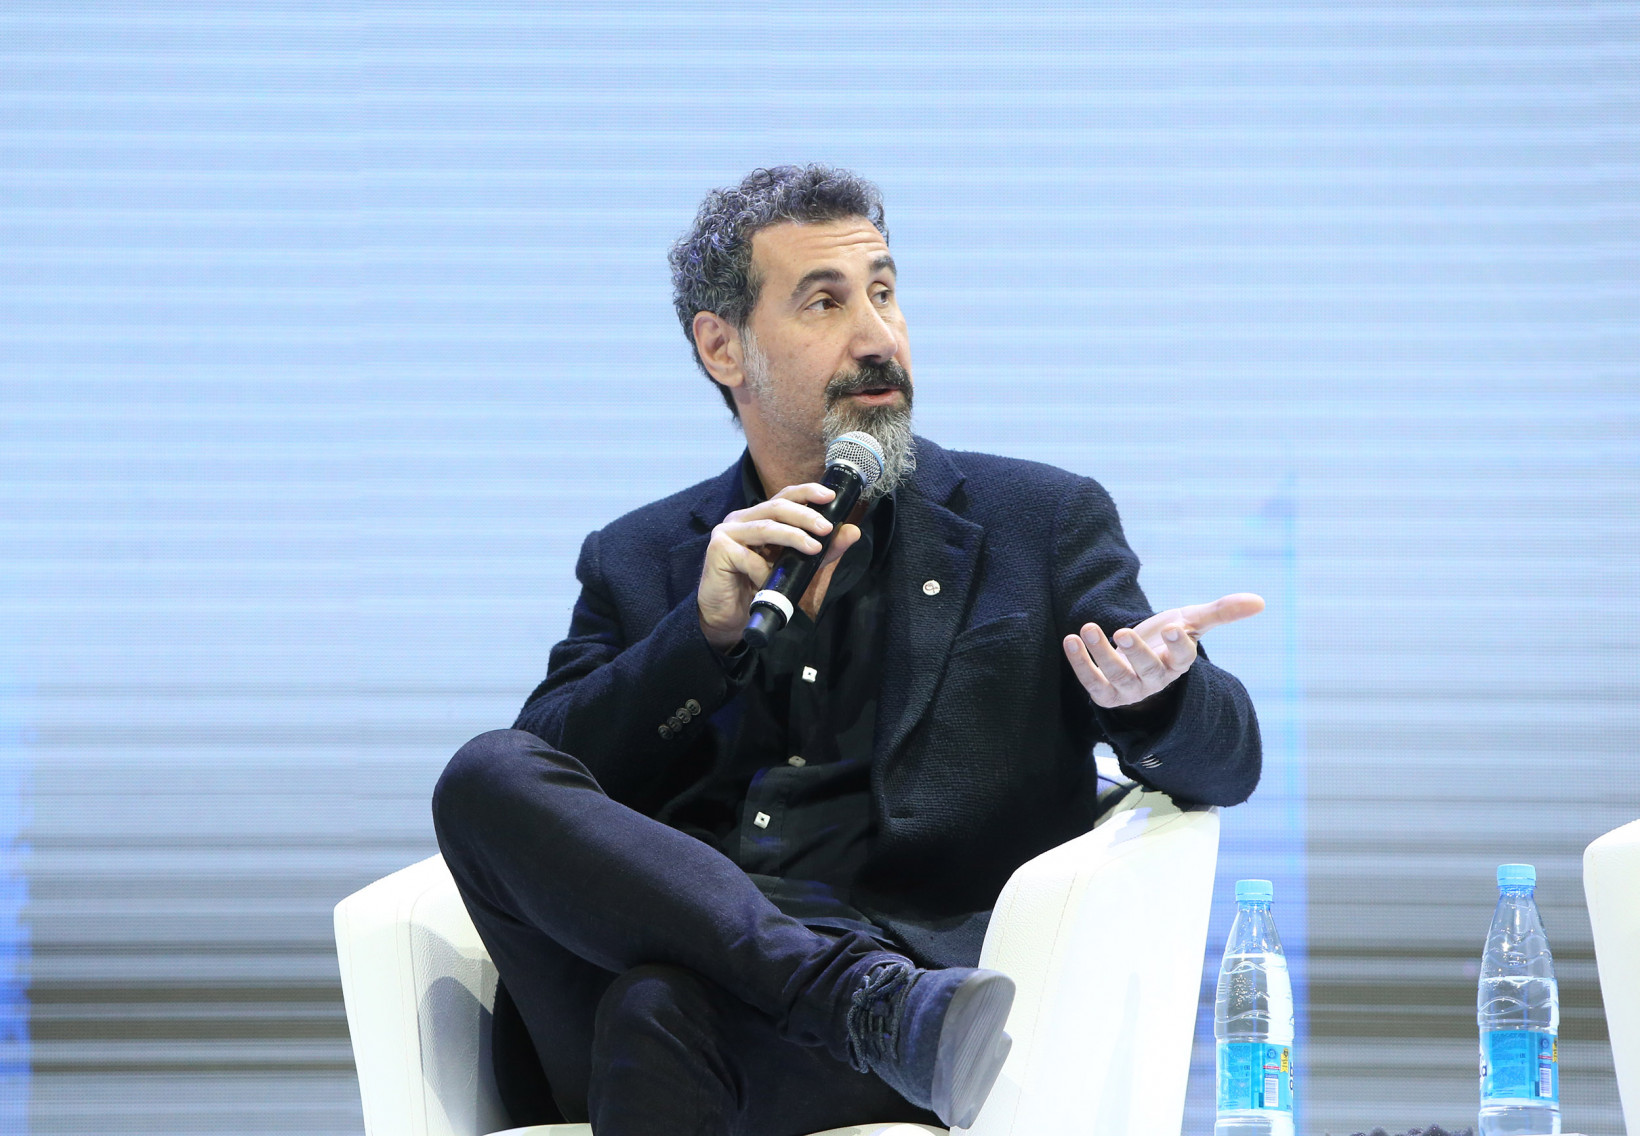 Musician and Activist Serj Tankian speaks at the Technology, Society & Democracy panel at WCIT 2019